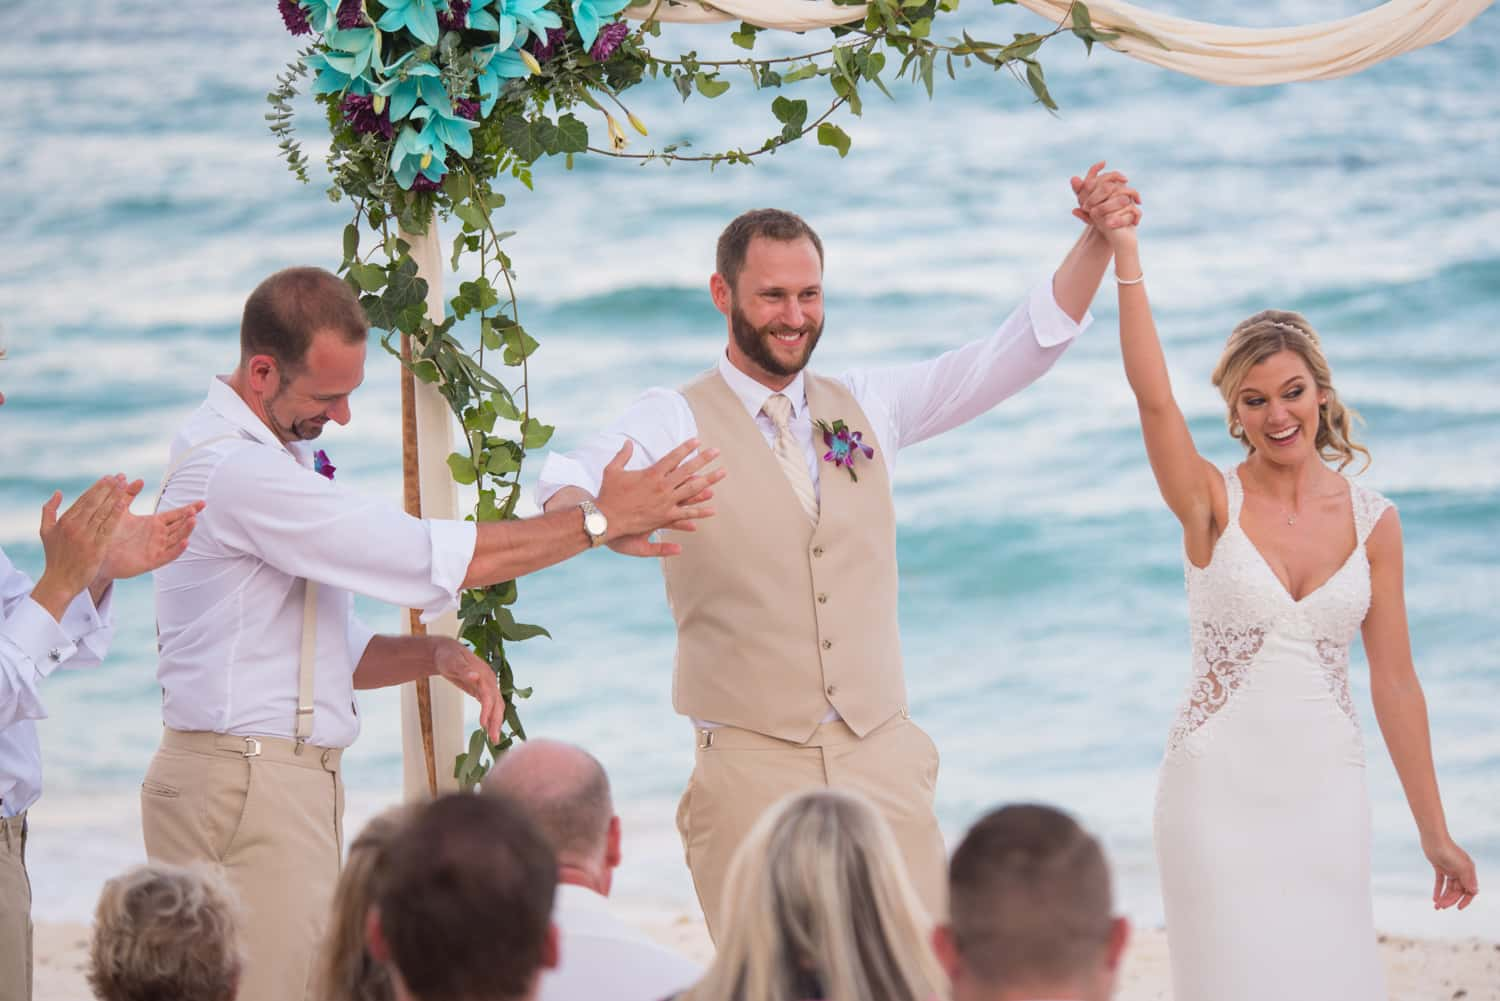 Bride and groom cheering during beach wedding in Tulum Mexico